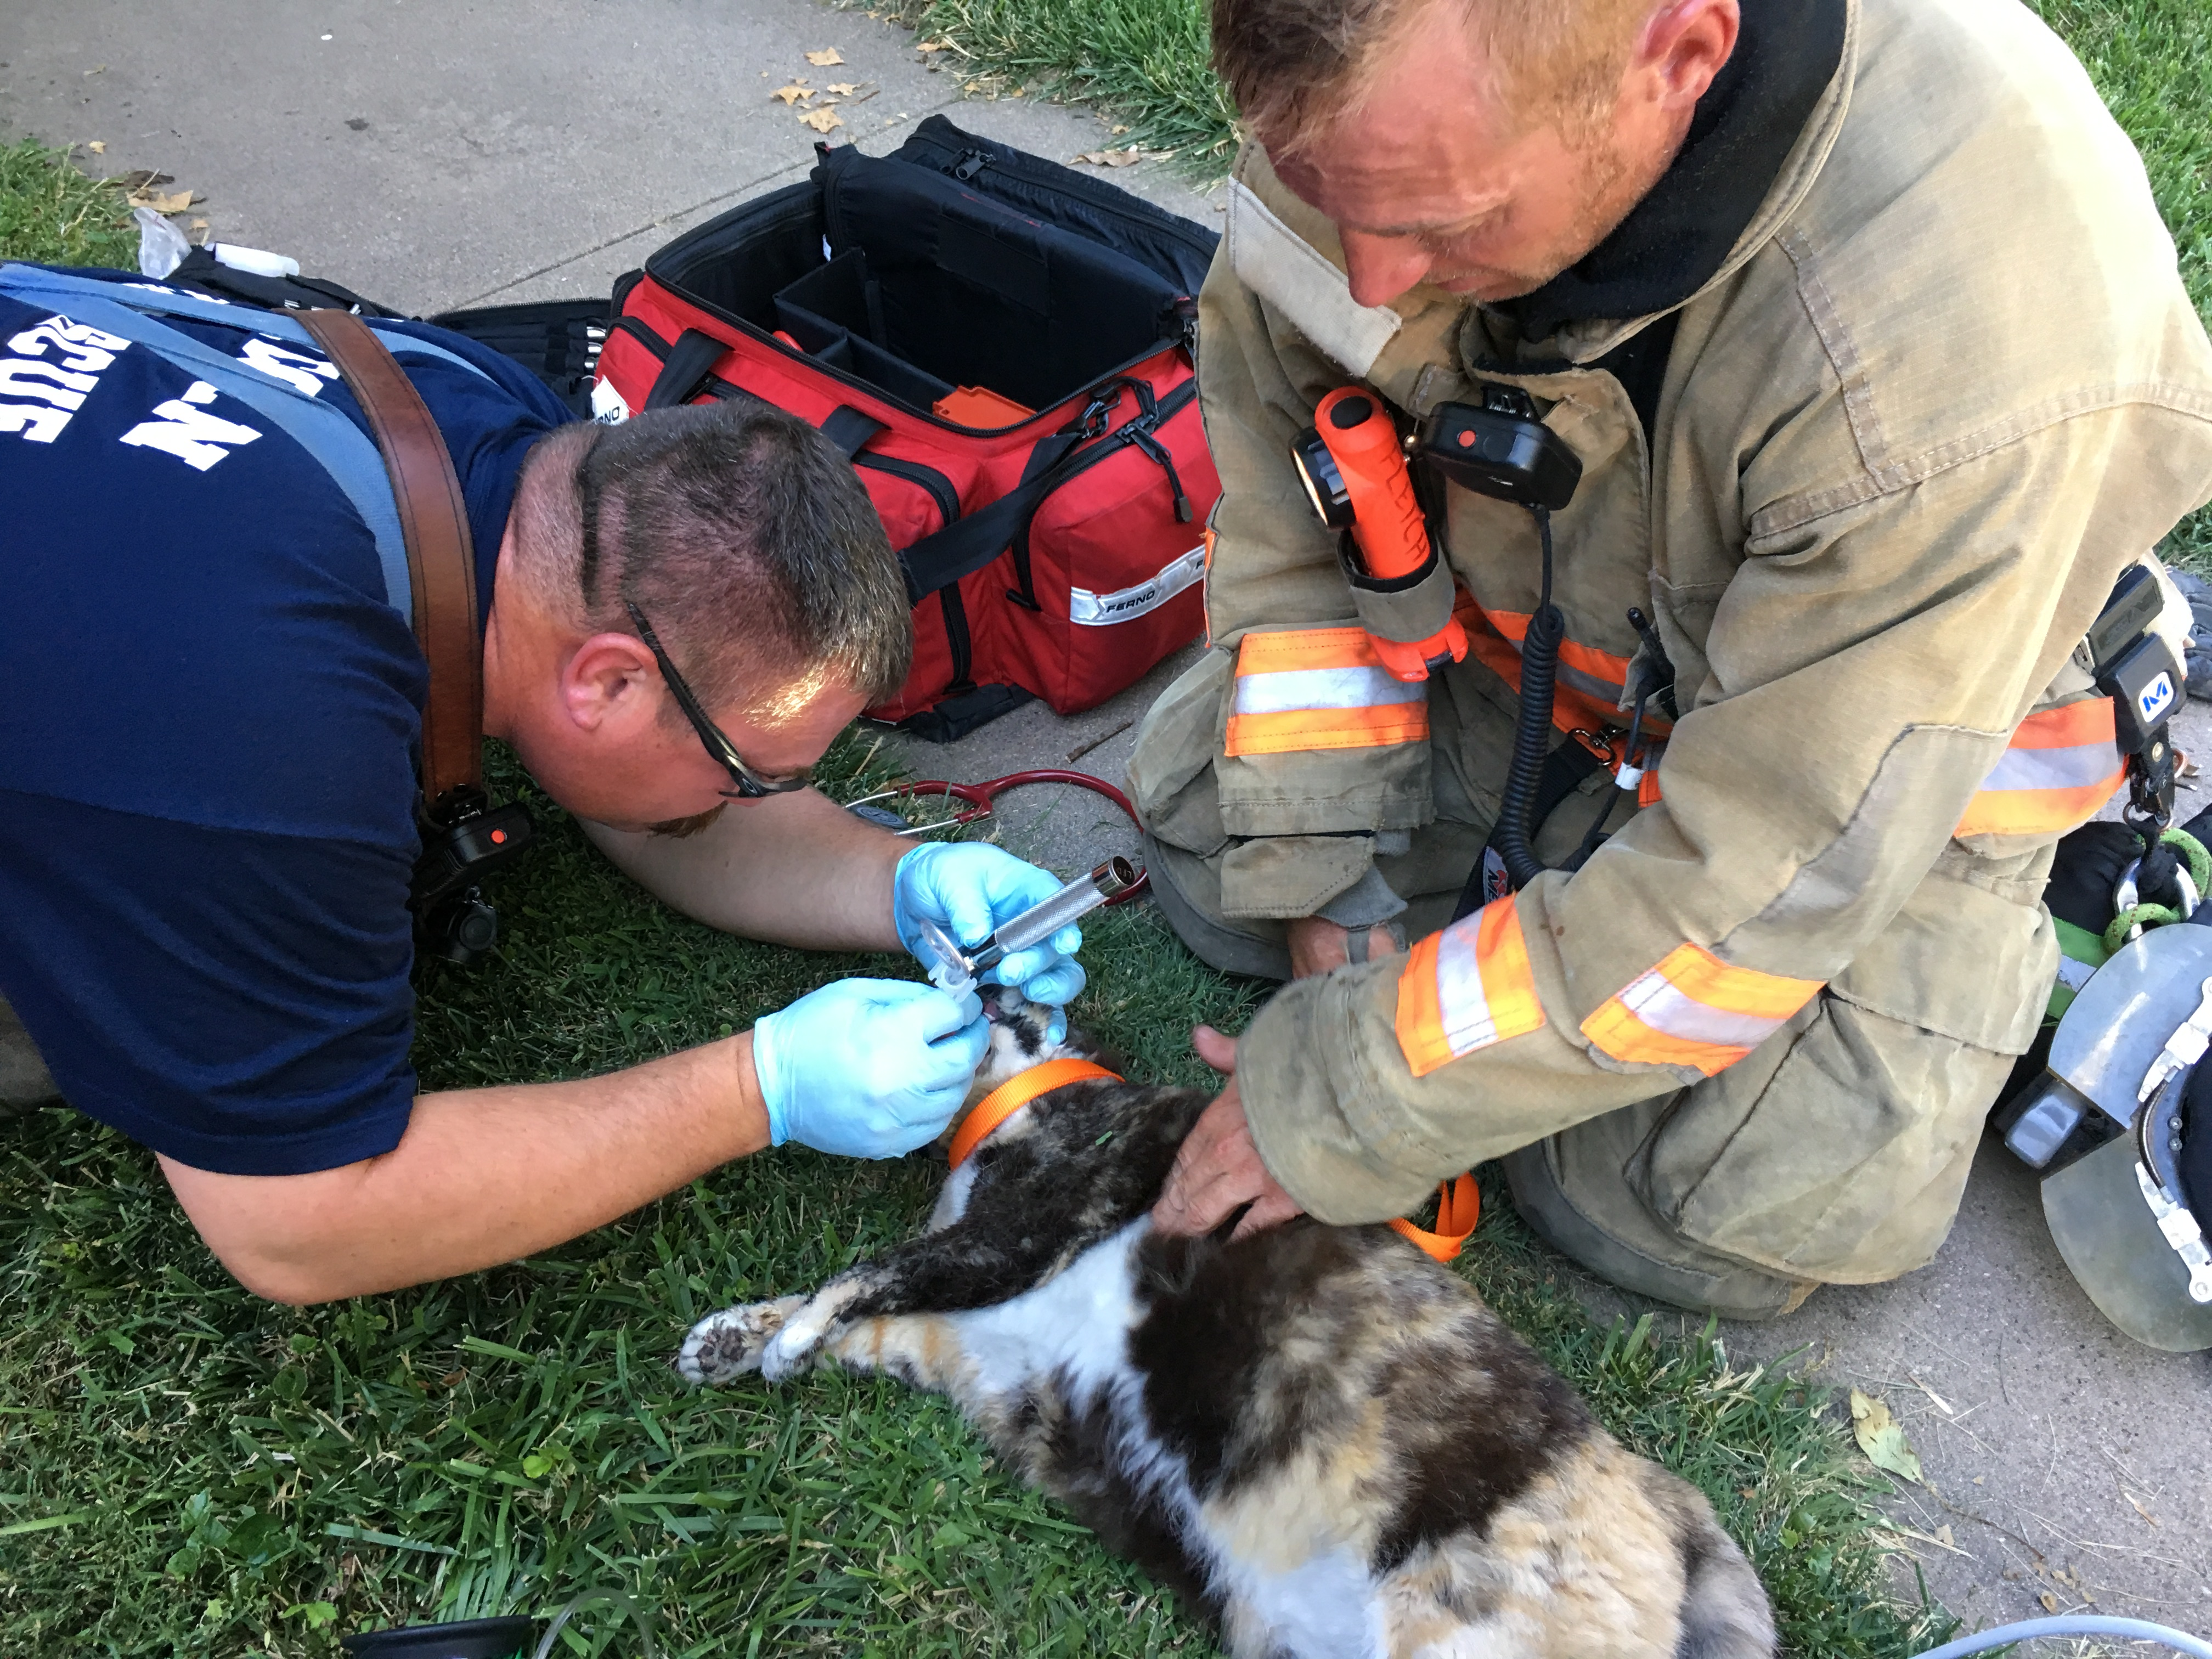 Firefighters try to revive a pet cat they retreived from a house fire.